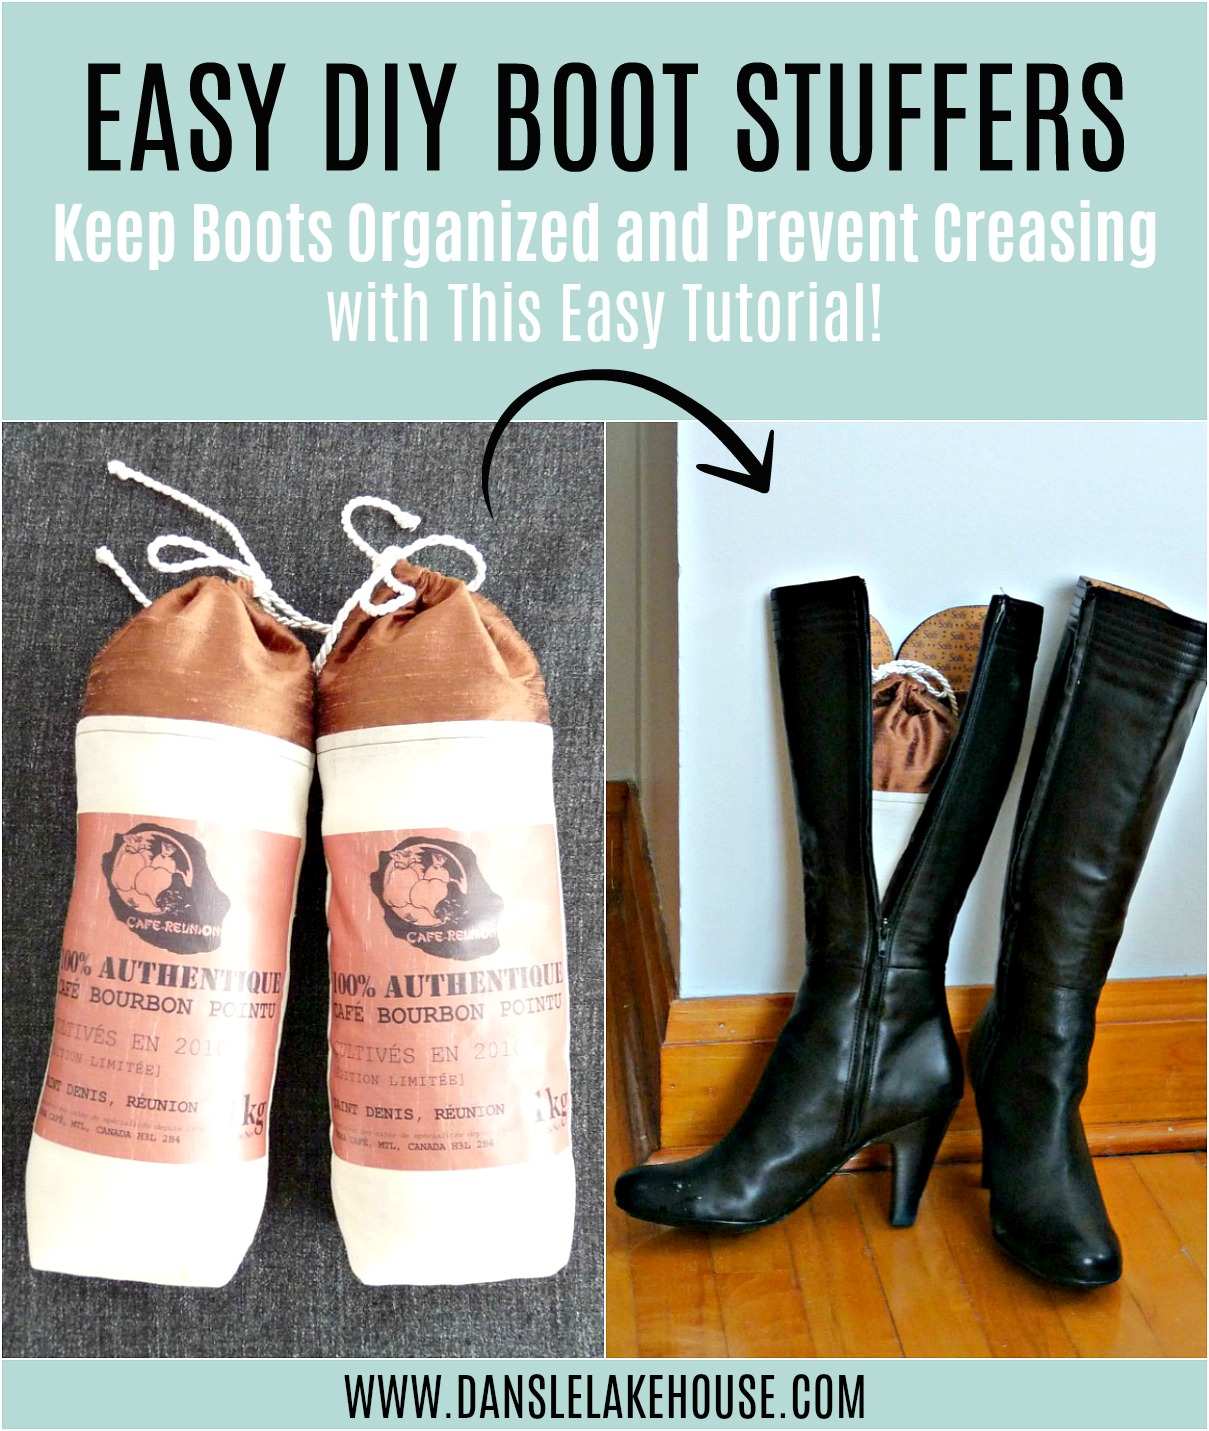 How to Make Easy DIY Boot Stuffers. Sew Your Own Boot Shapers Using Scrap Fabric and Add Essential Oils or Dried Lavender. #diy #organizing #bootshapers #bootstuffers #sewingprojects